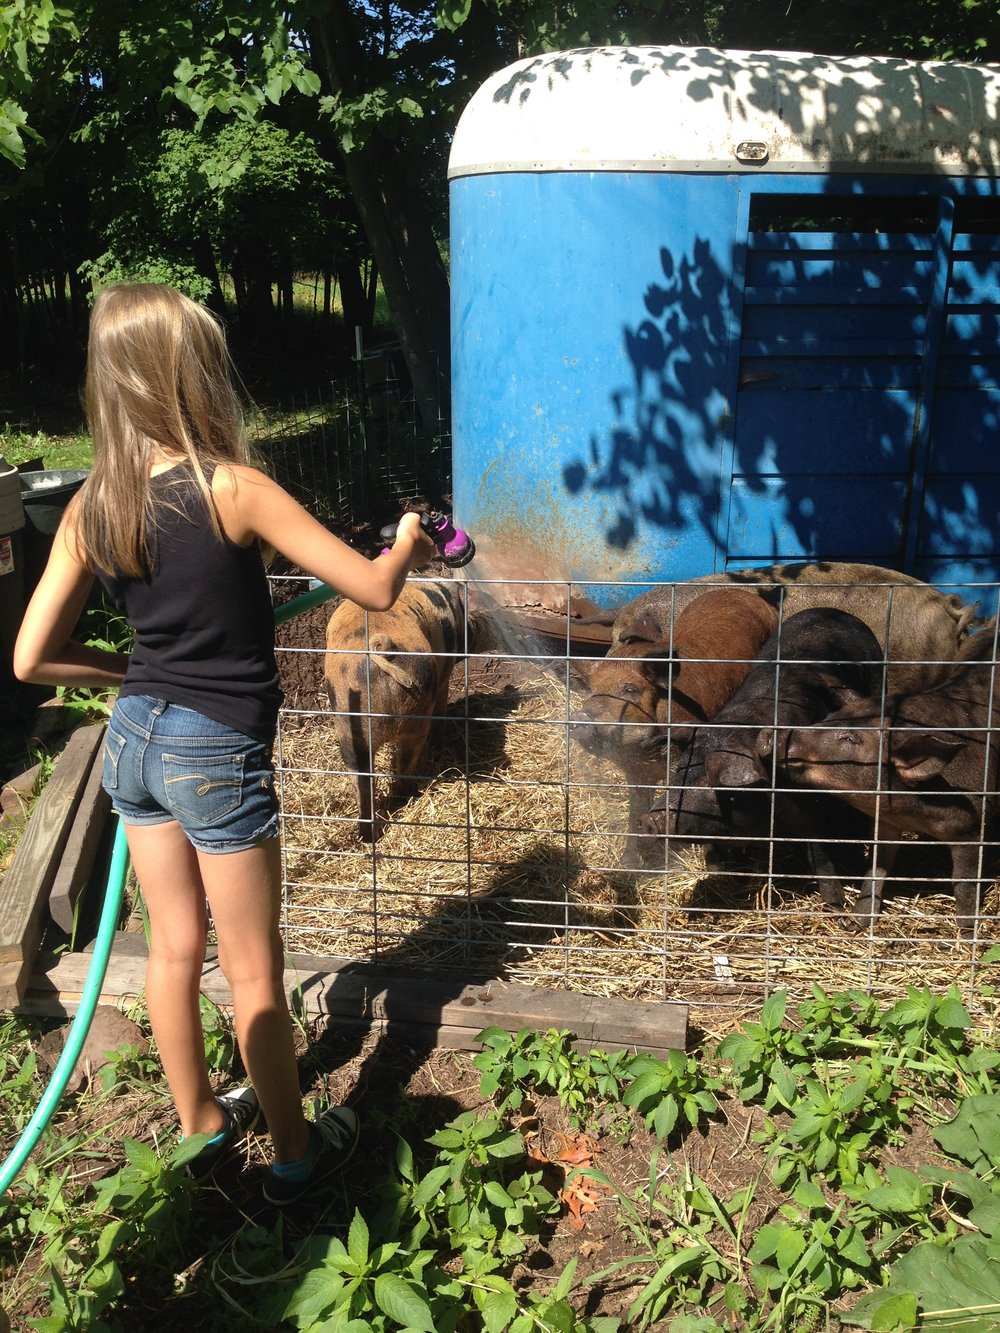 a niece helping out with chores